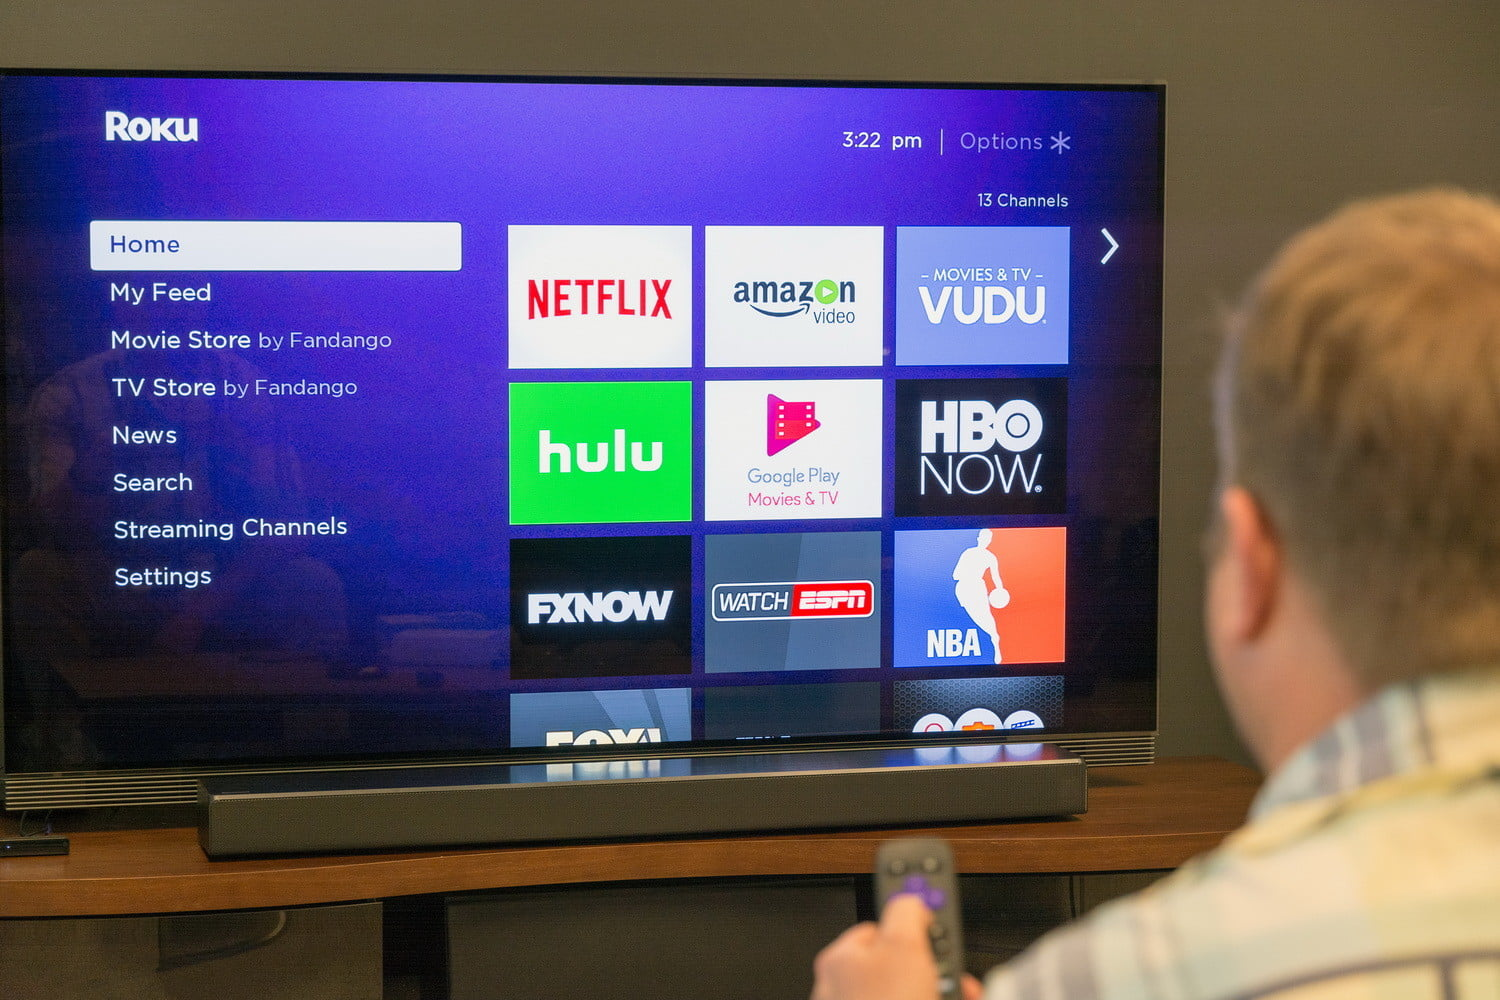 Roku Express Review: Specs, Price, Features, and More